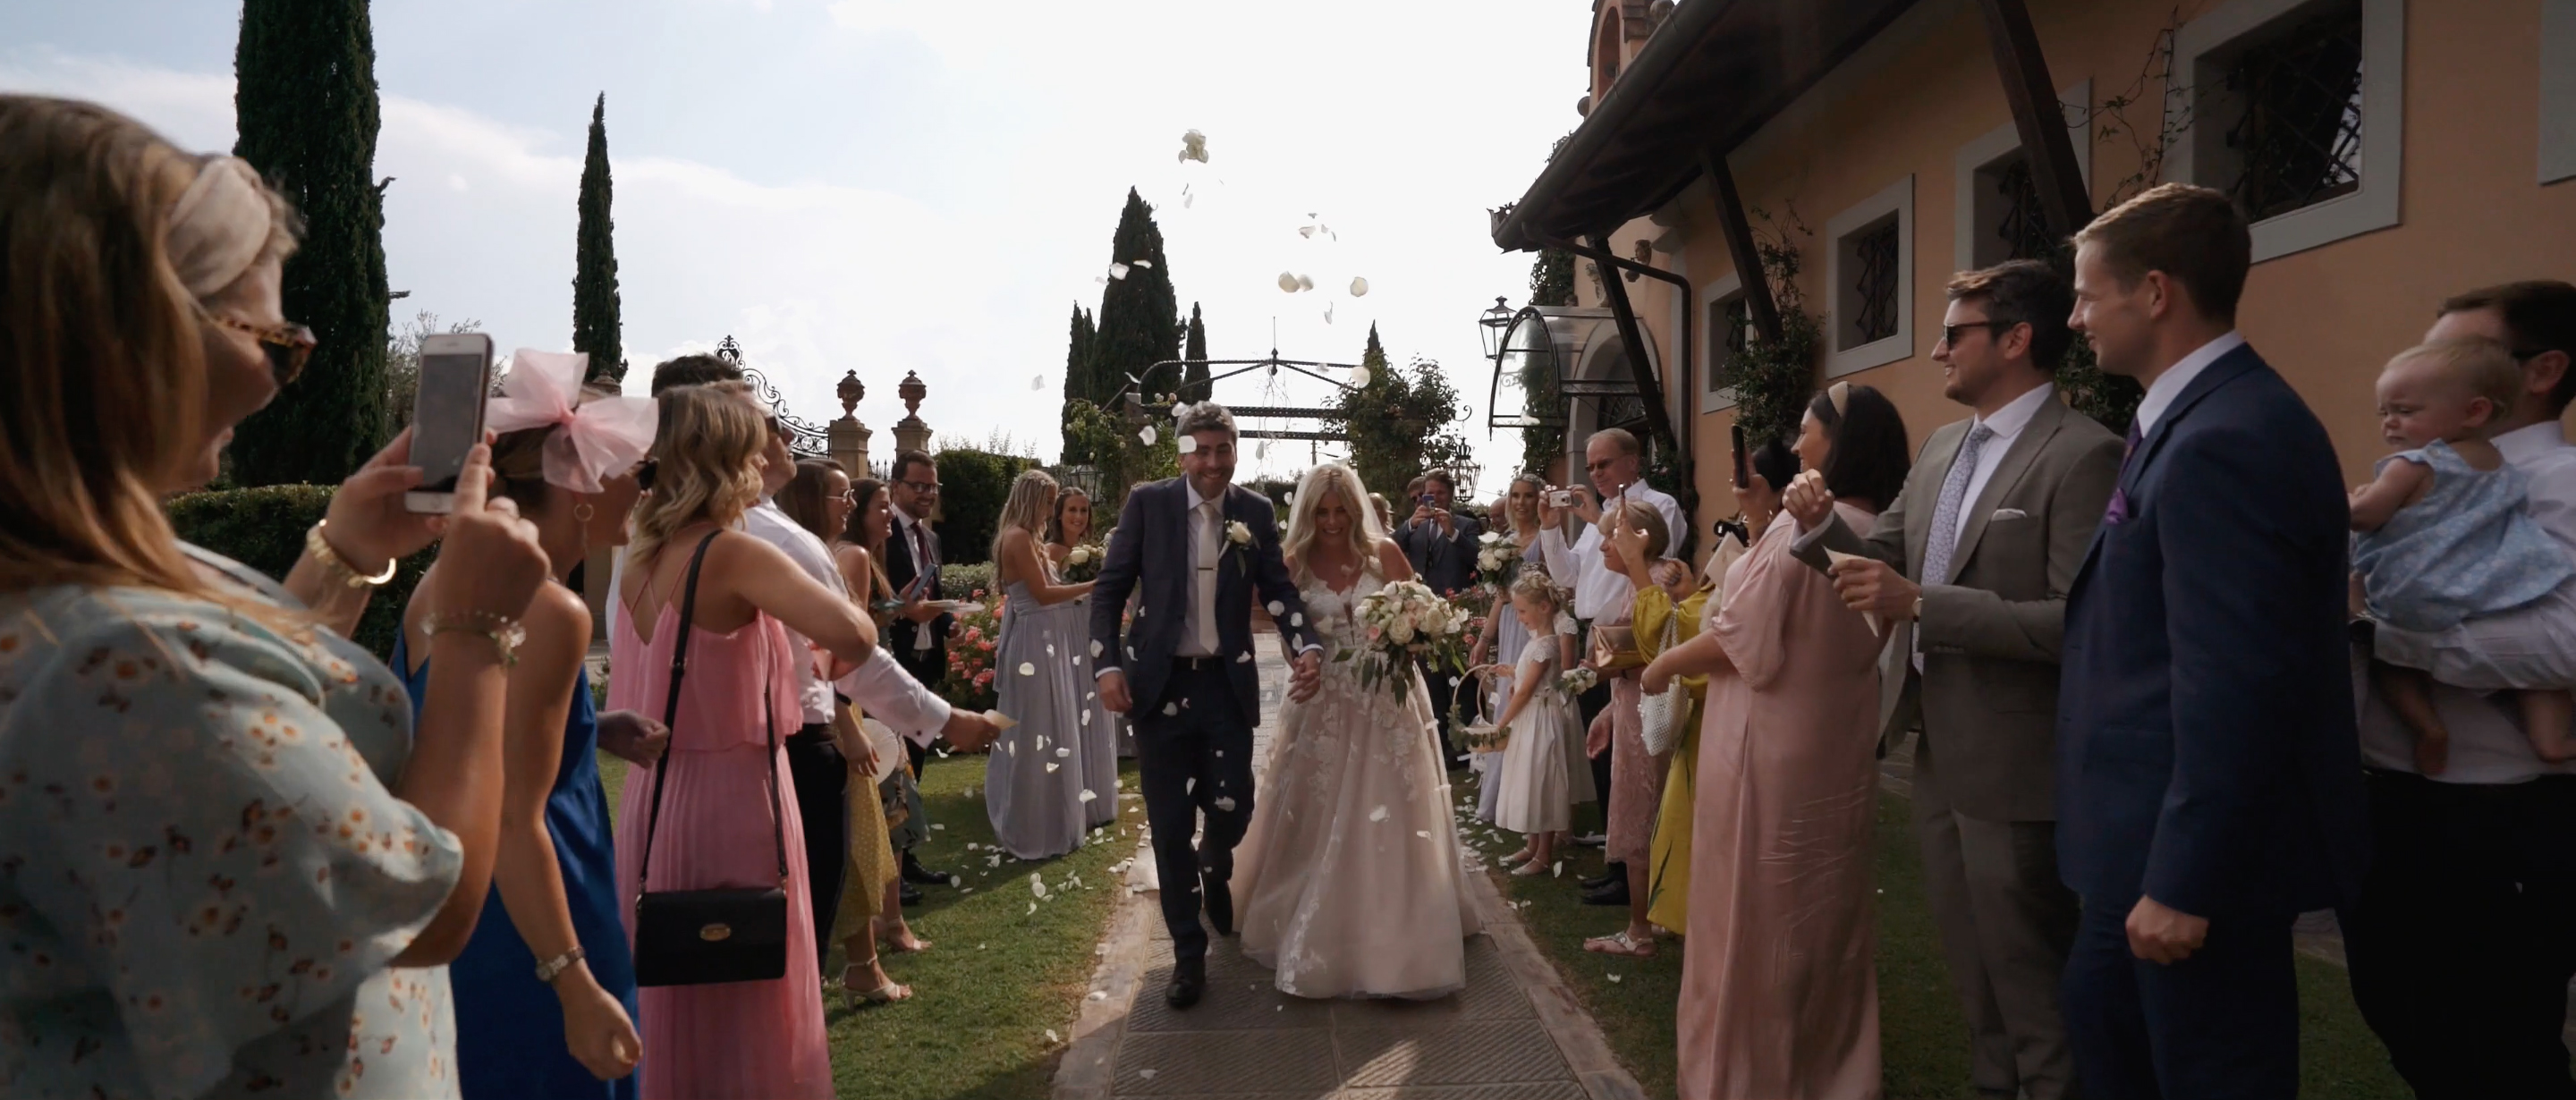 Antica Fattoria di Paterno wedding 3